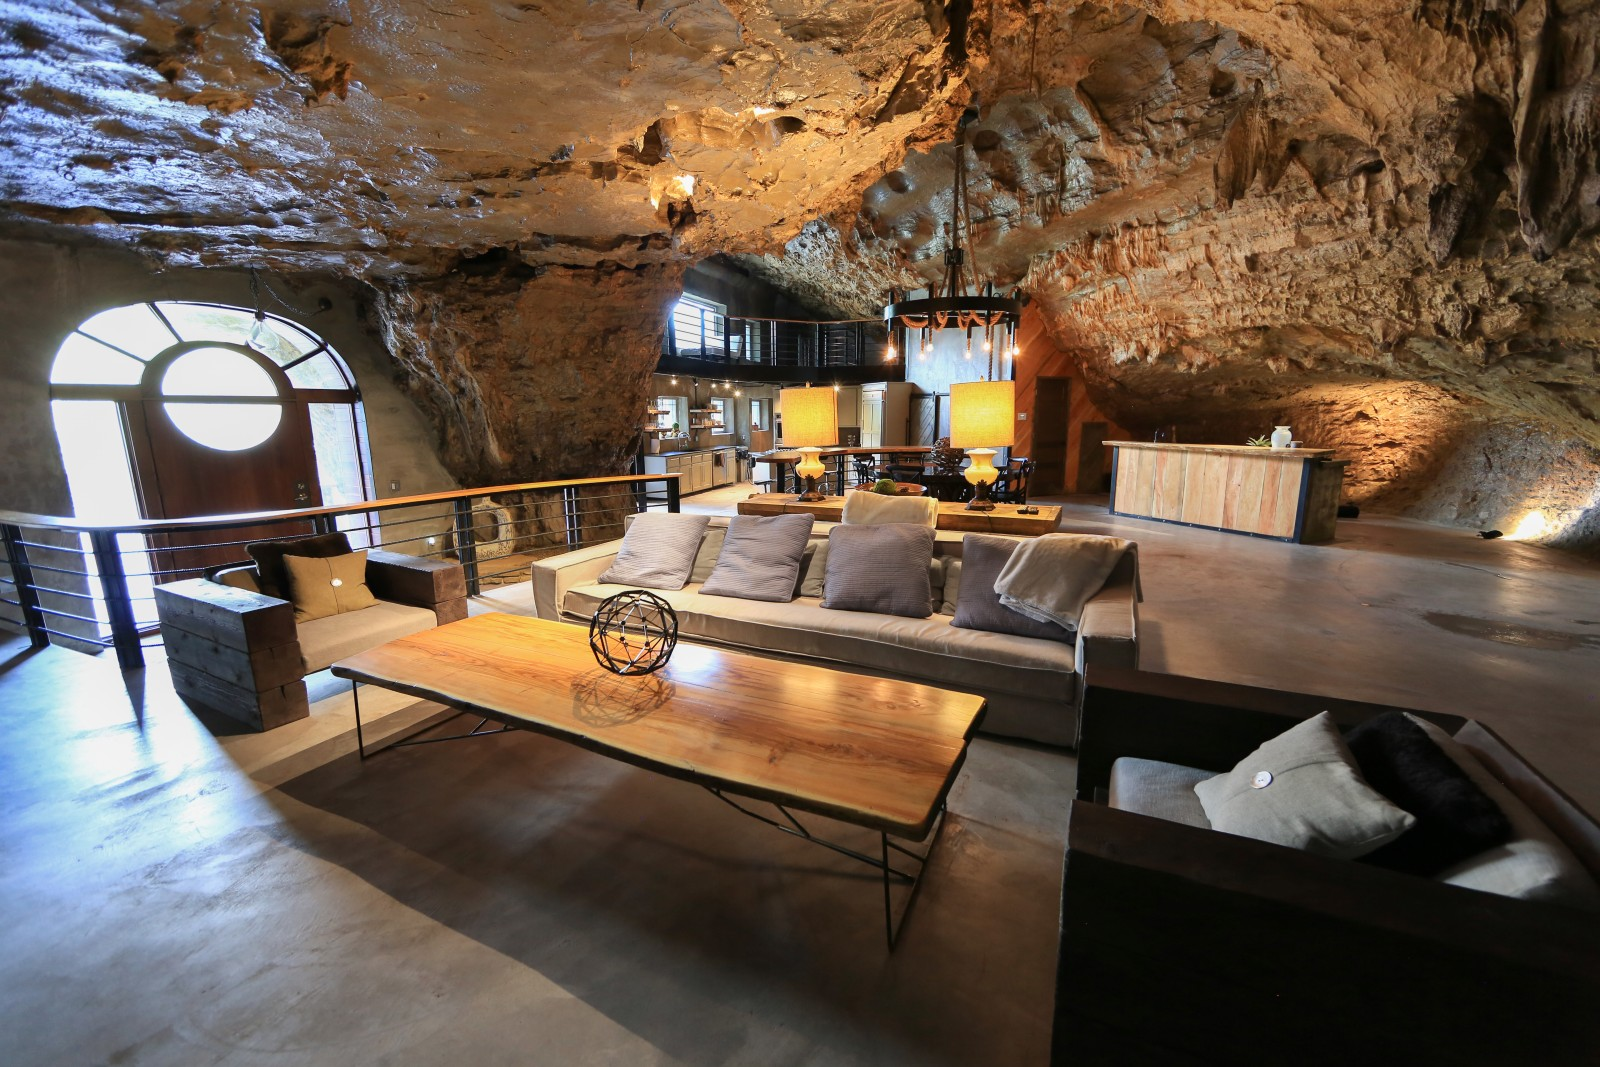 Hibernate Luxuriously in This 5,572-Square-Foot Cave Mansion